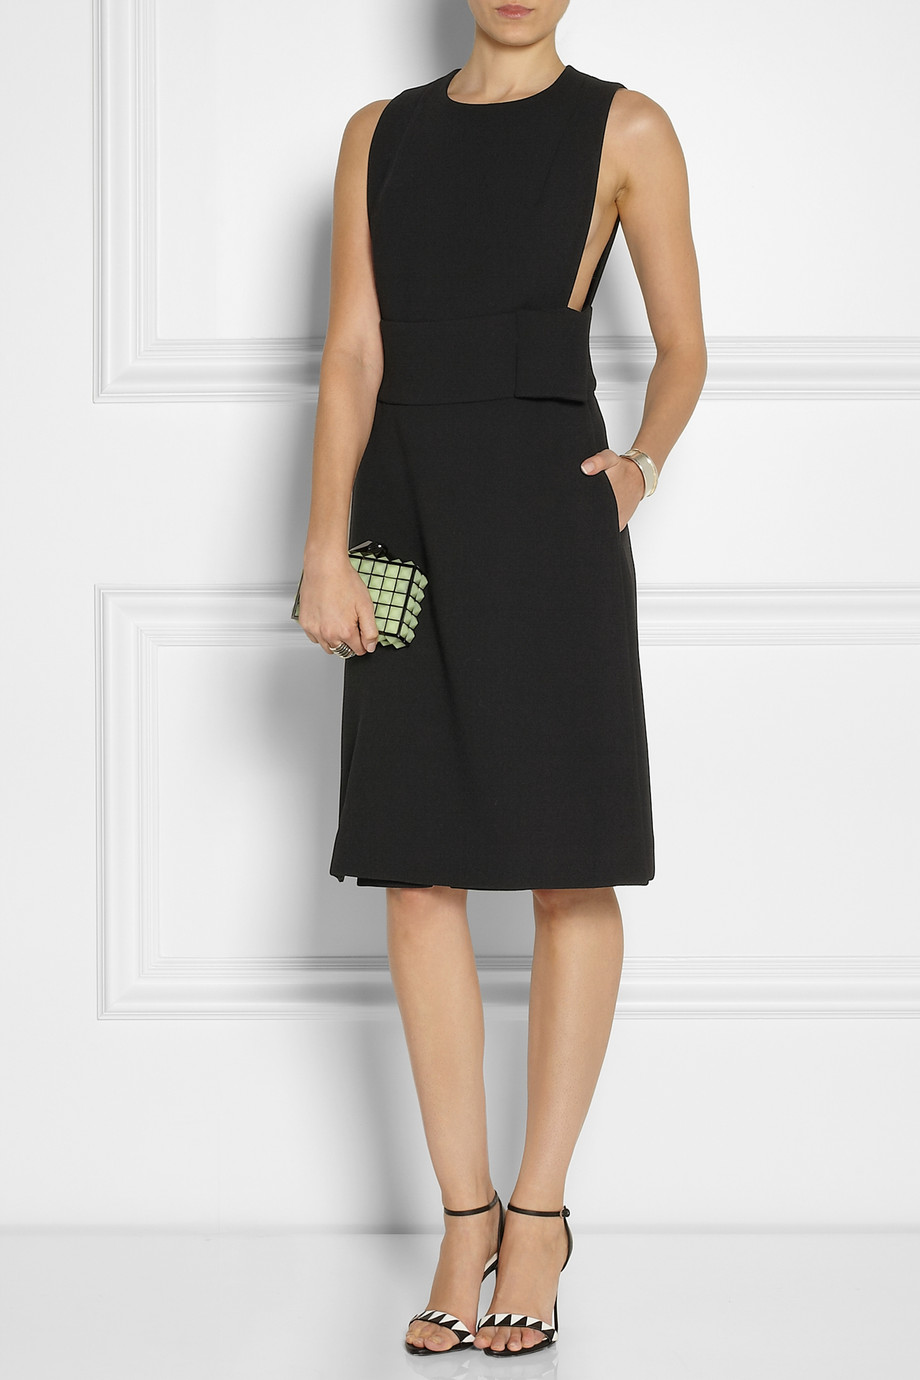 THAKOON  Crepe Dress buy HERE